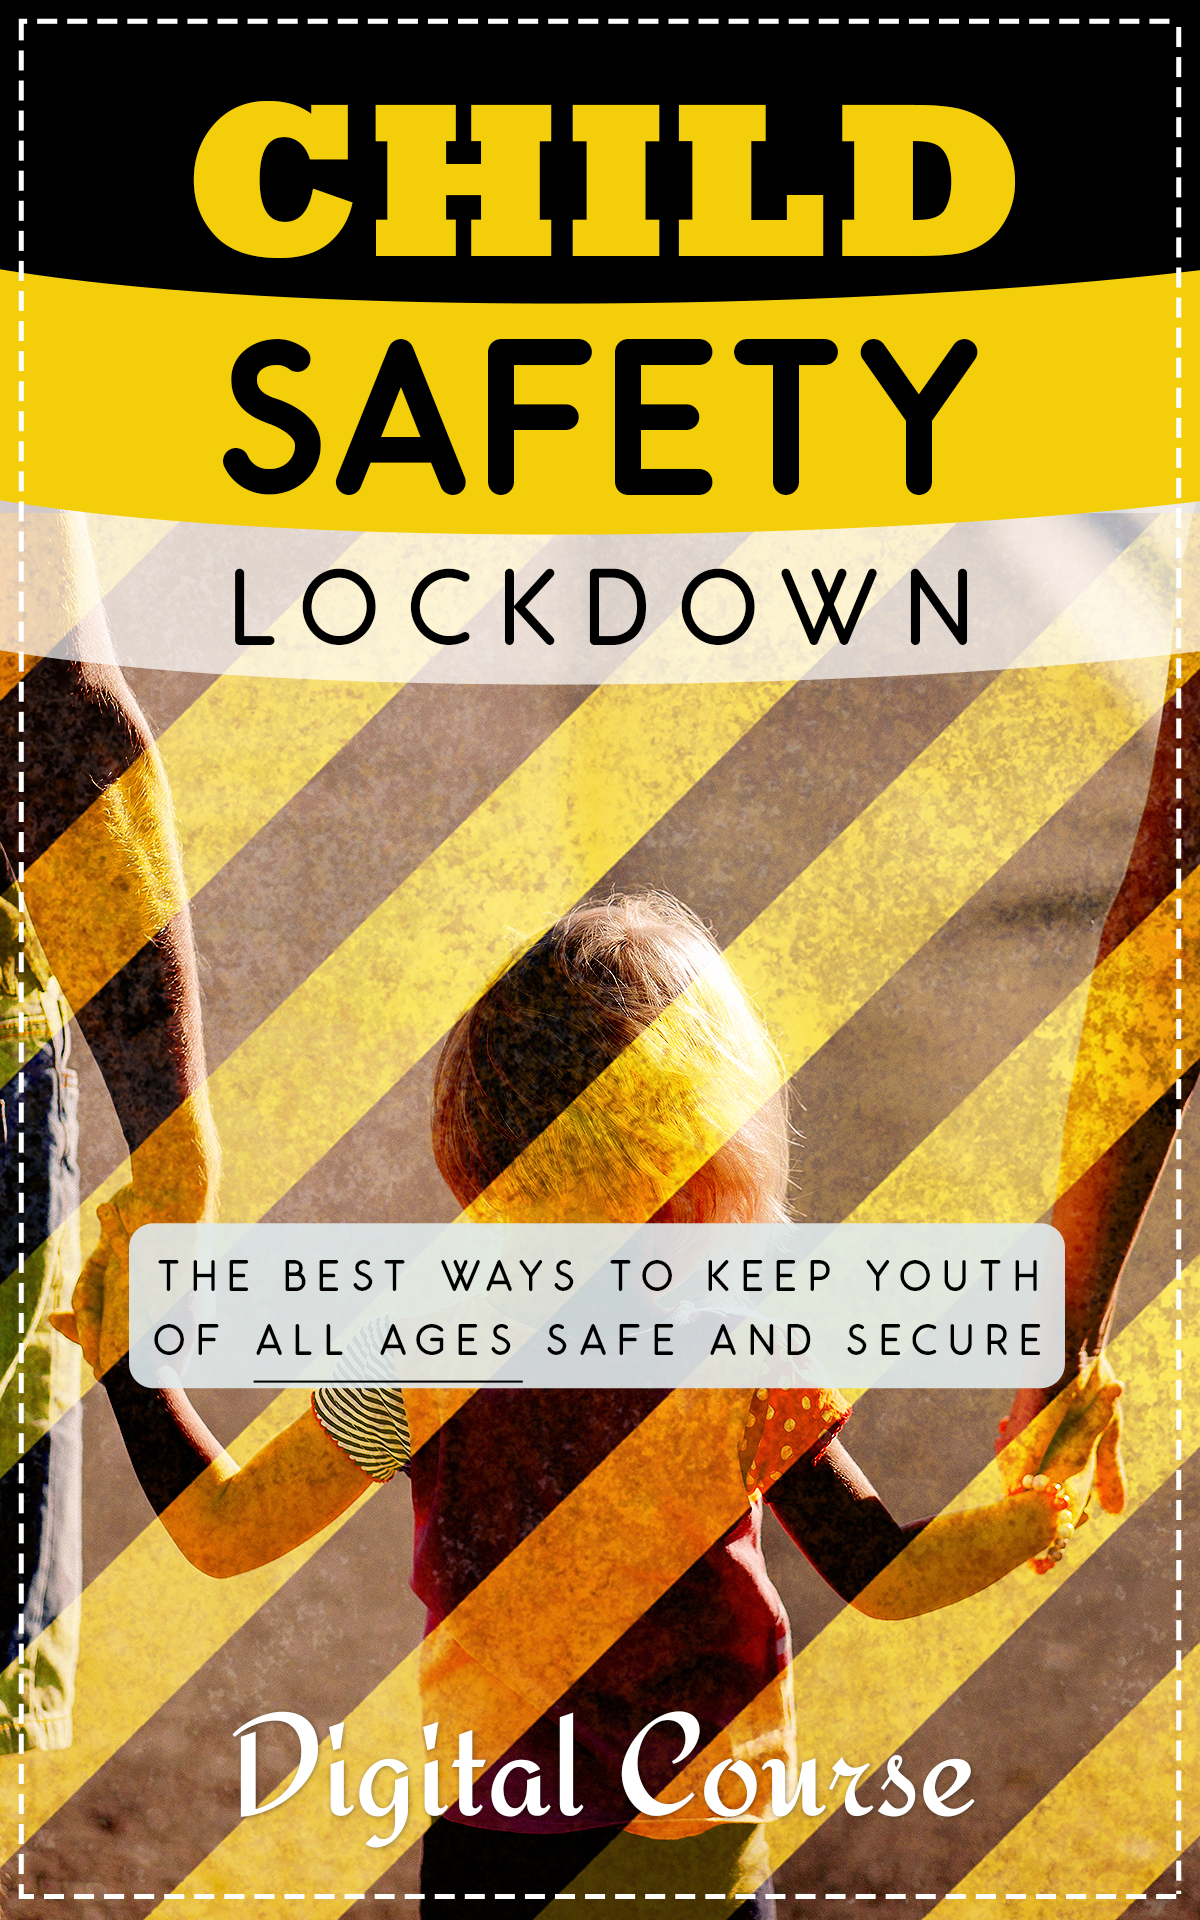 Child Safety Lockdown (The Best Ways To Keep Youth Of All Ages Safe And Secure) Ebook's Ebook Image